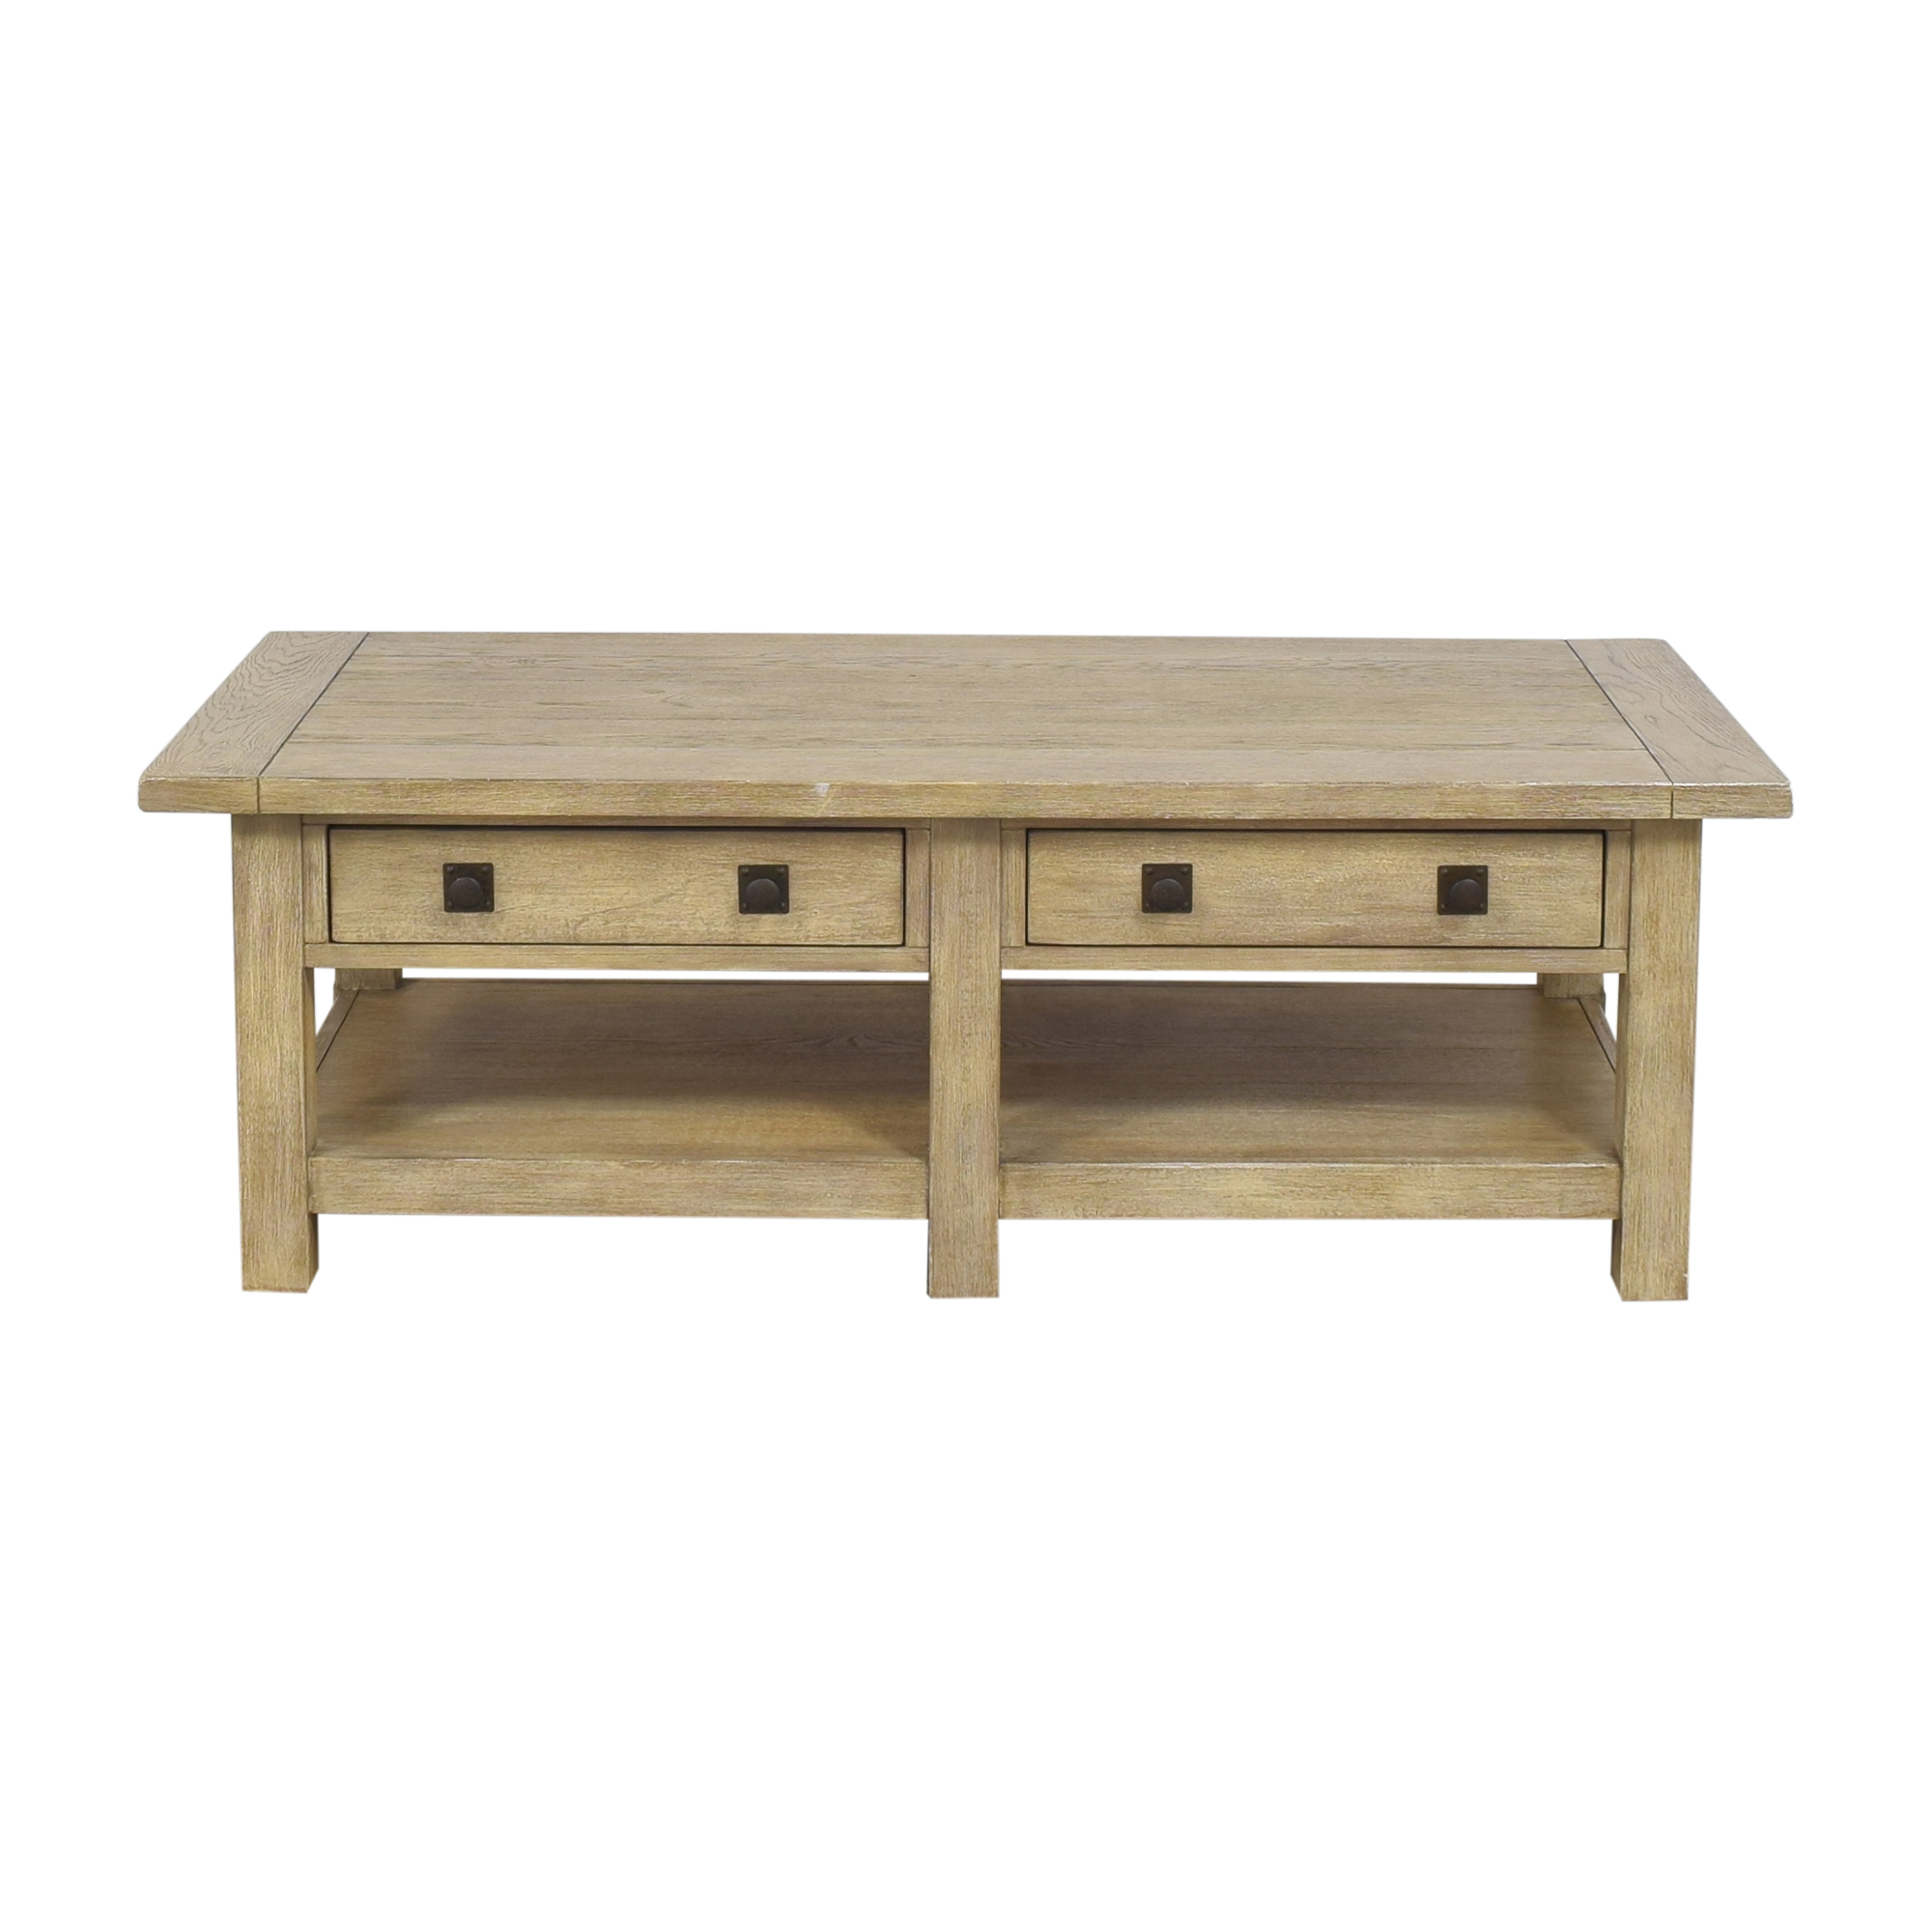 Pottery Barn Pottery Barn Benchwright Coffee Table price